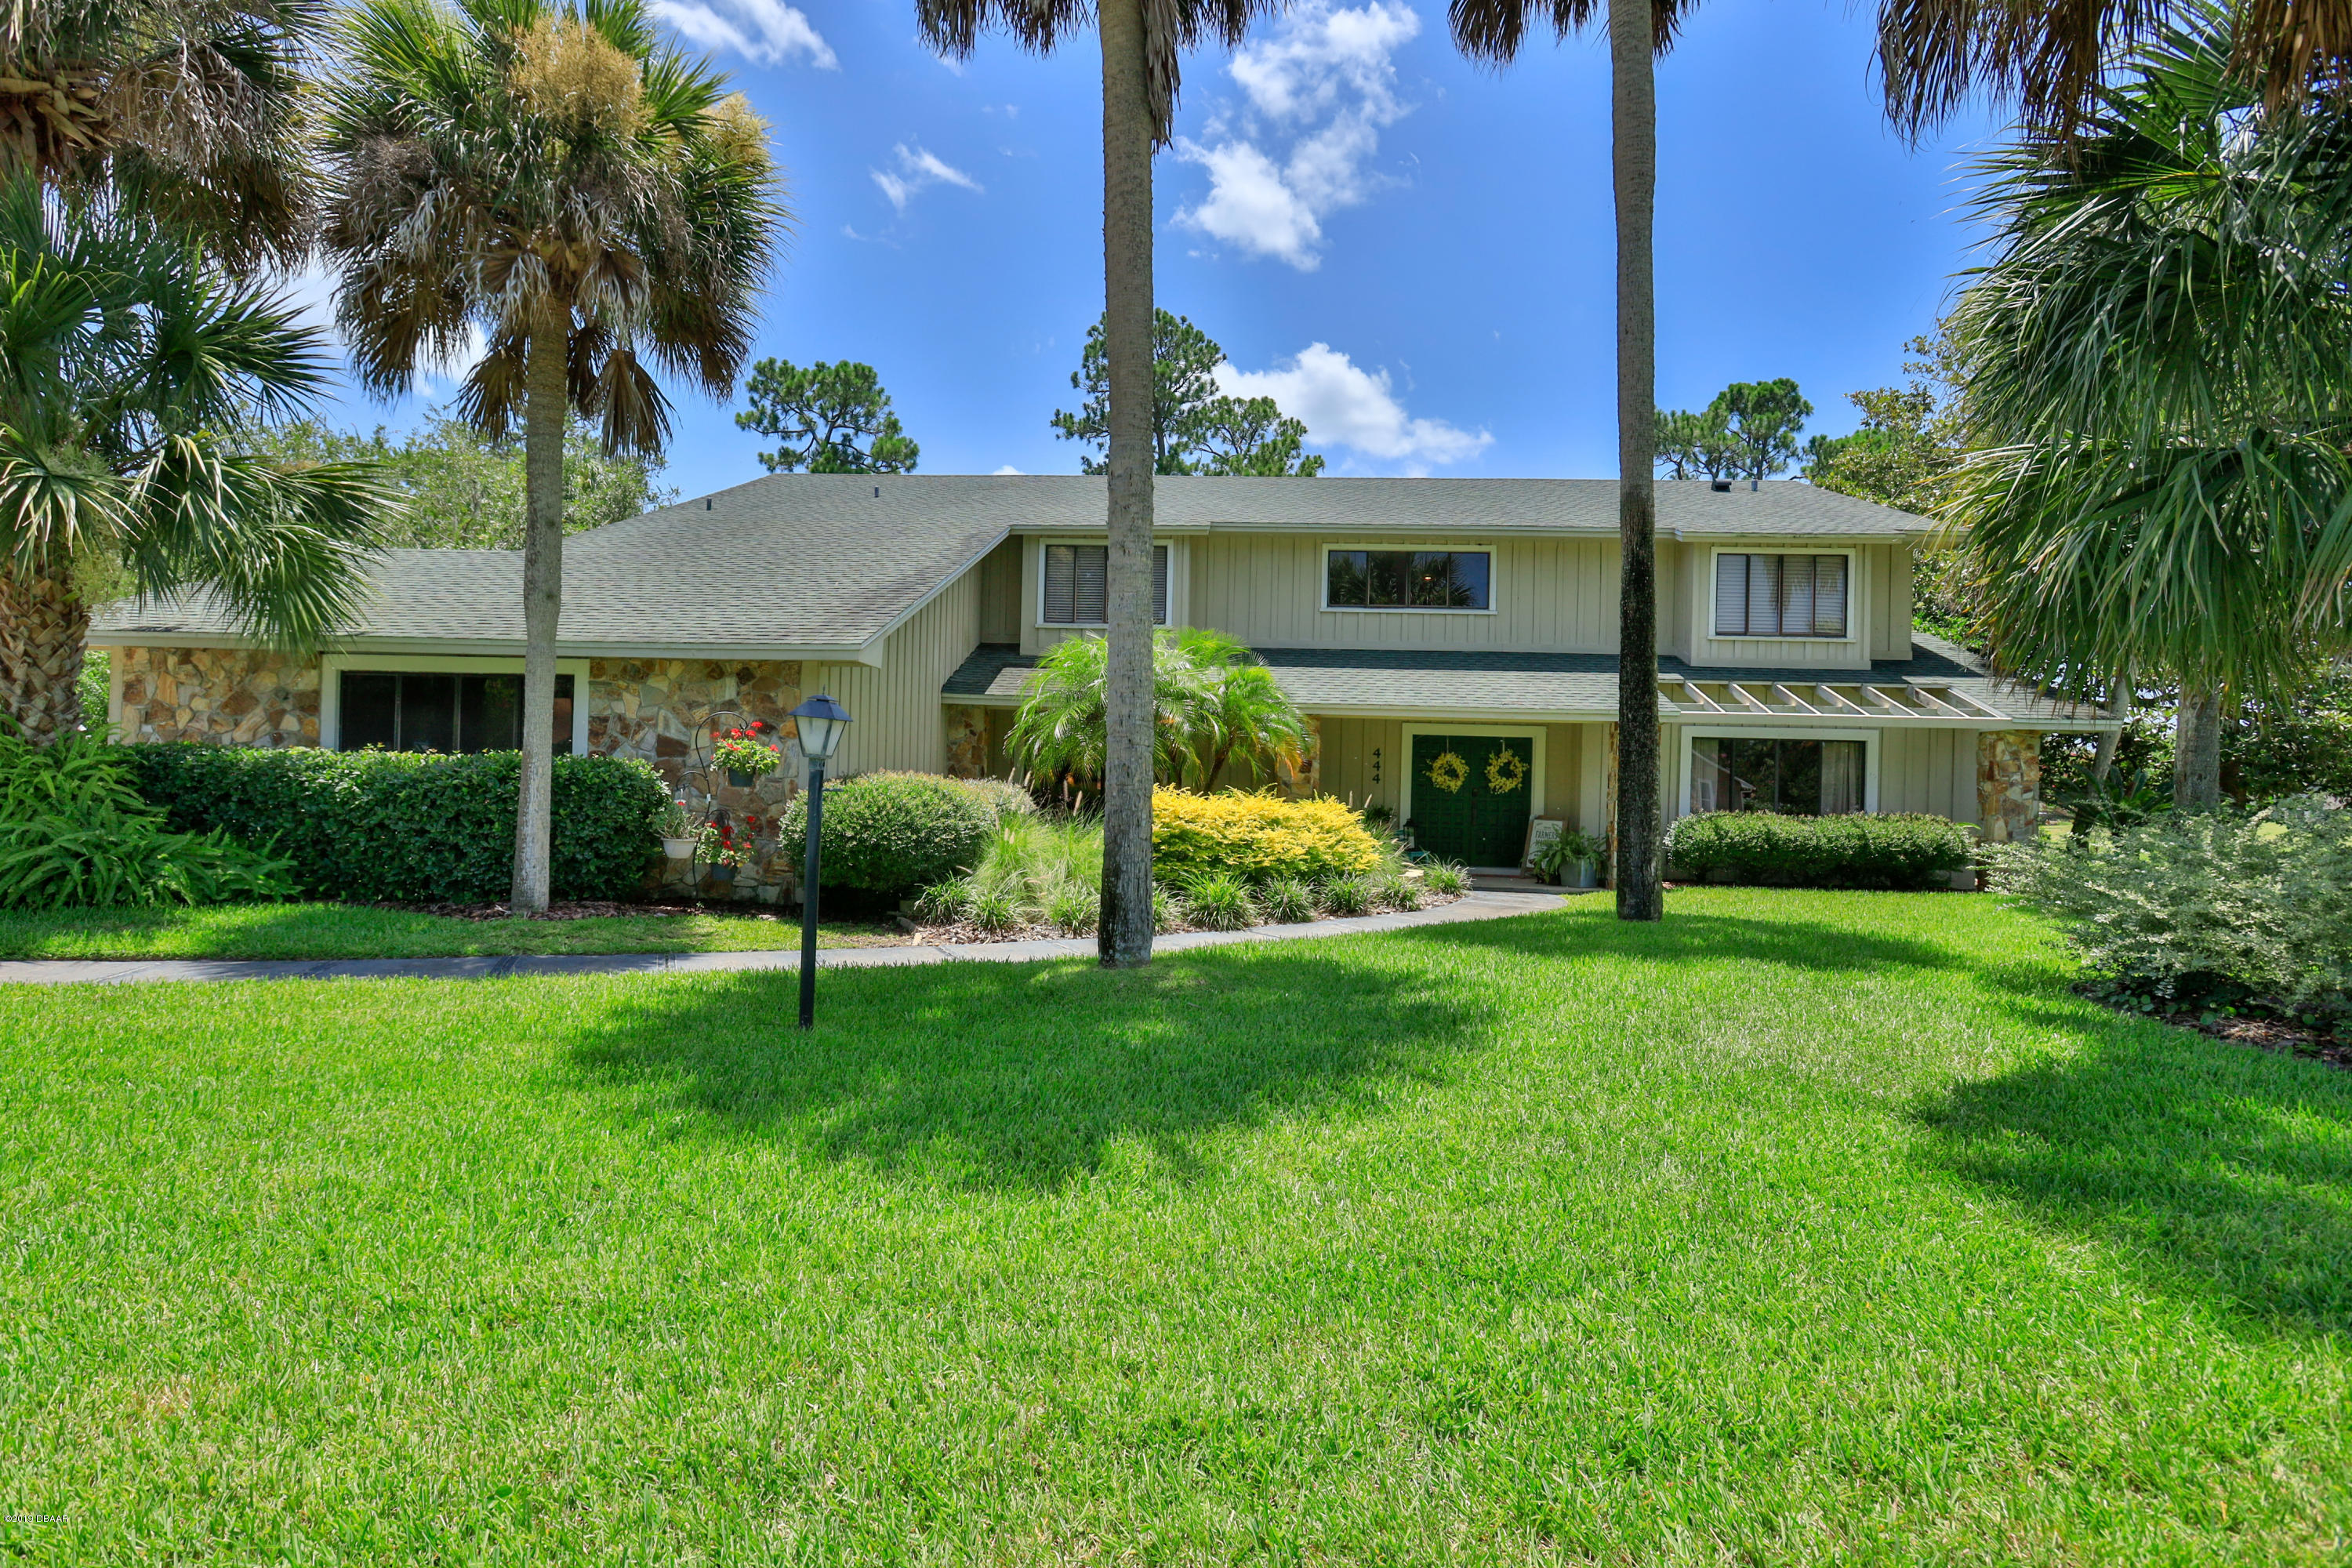 Photo of 444 Pelican Bay Drive, Daytona Beach, FL 32119